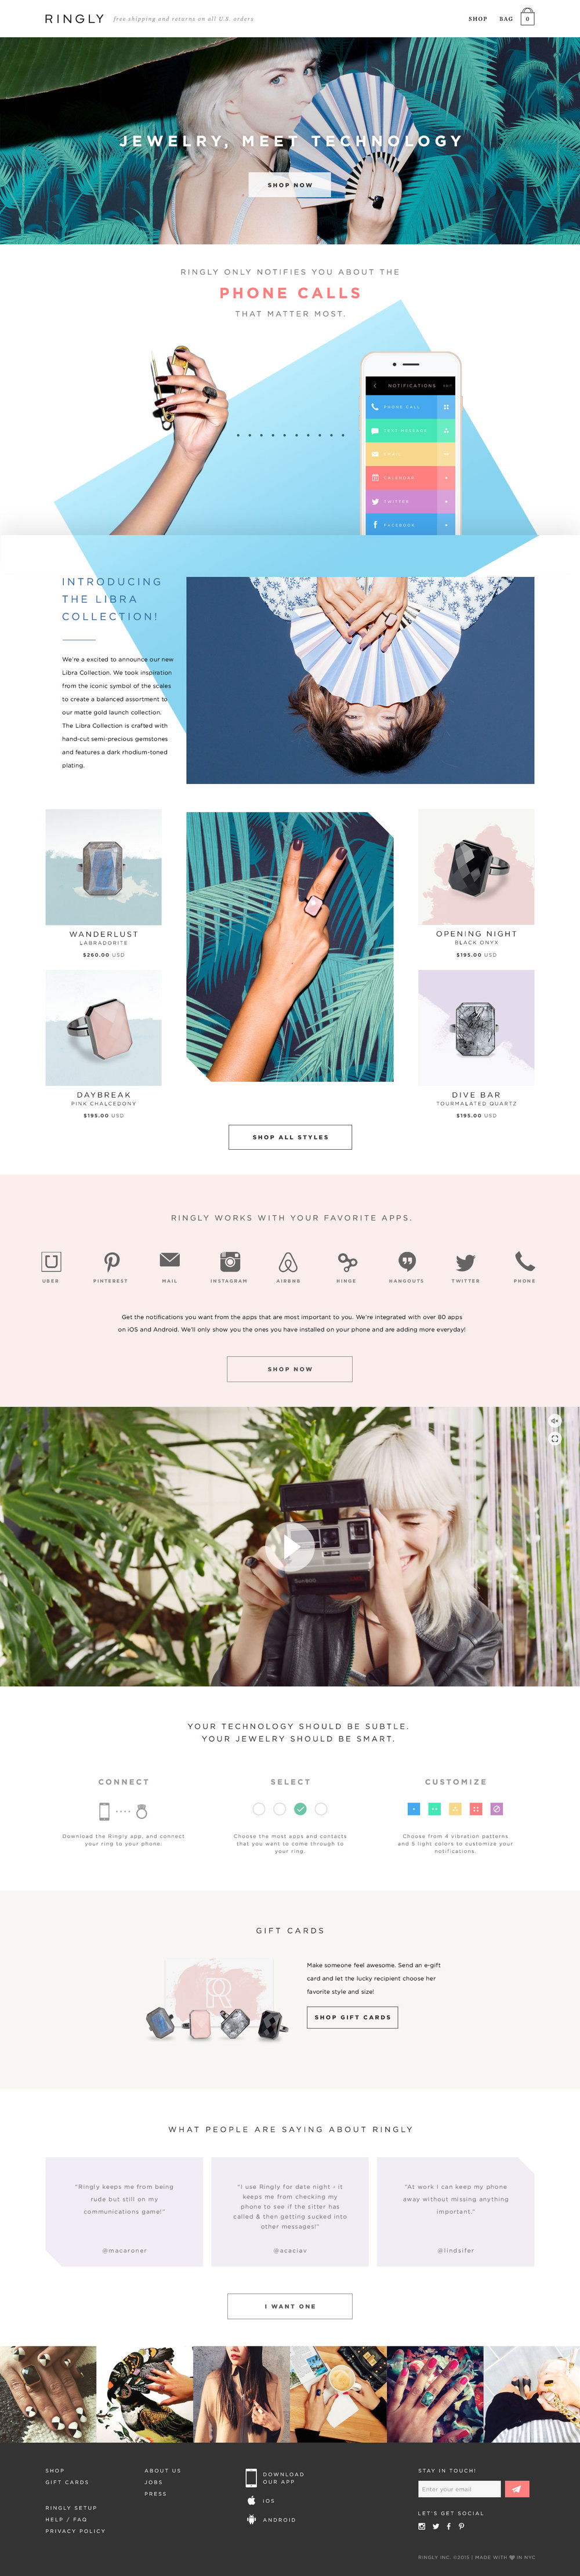 Ringly e-commerce landing page